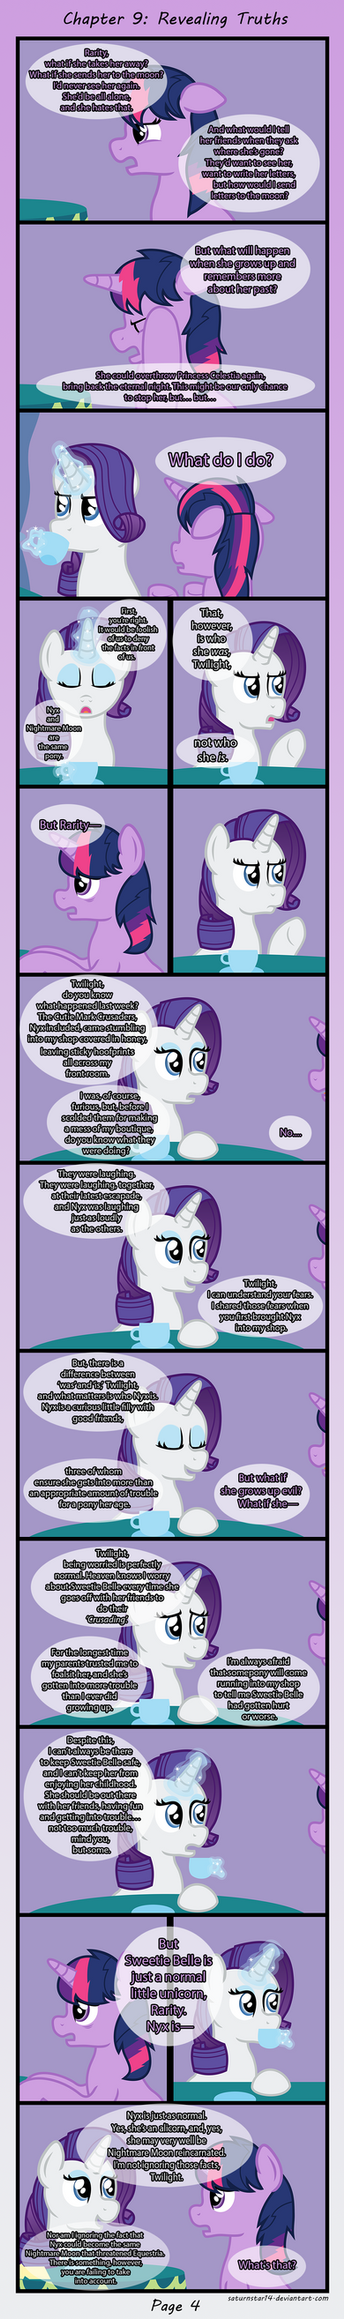 Past Sins: Revealing Truths P4 by SaturnStar14